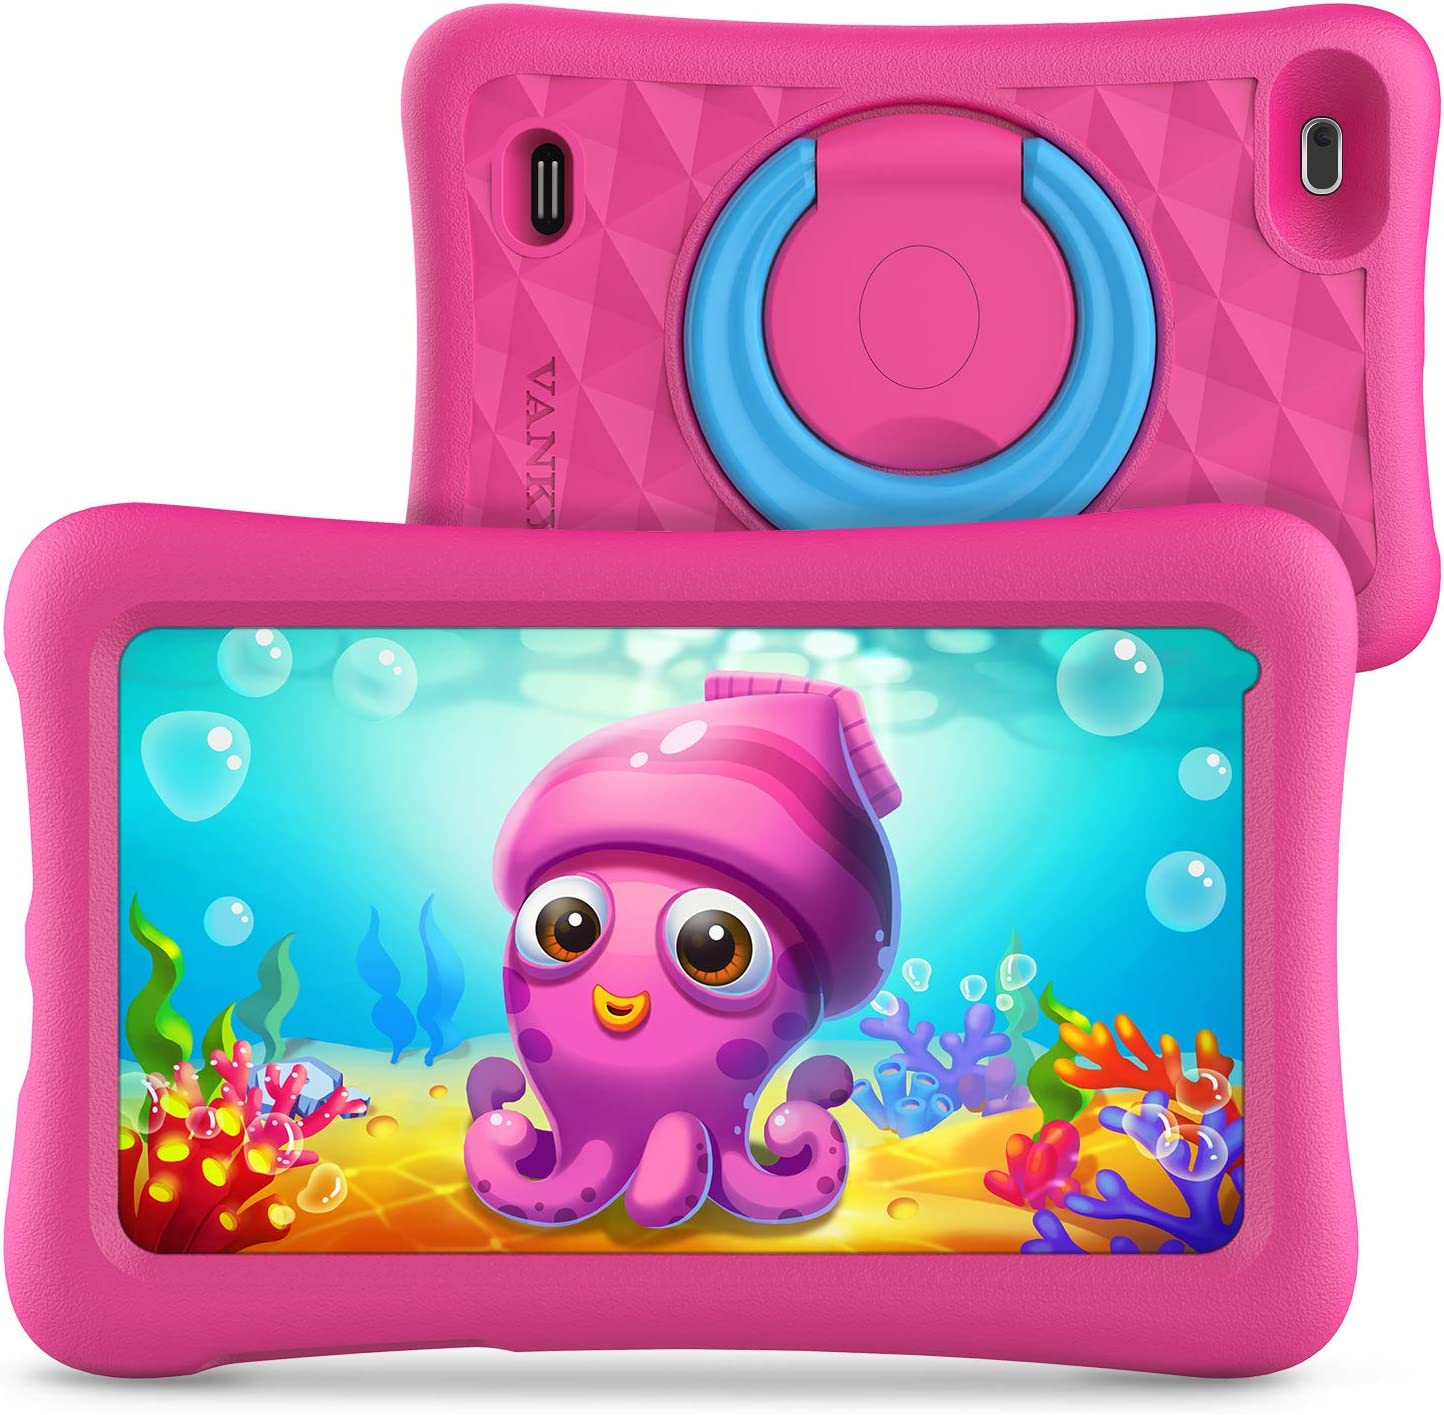 The best toddlers tablet. Vankyo MatrixPad Kids Tablet